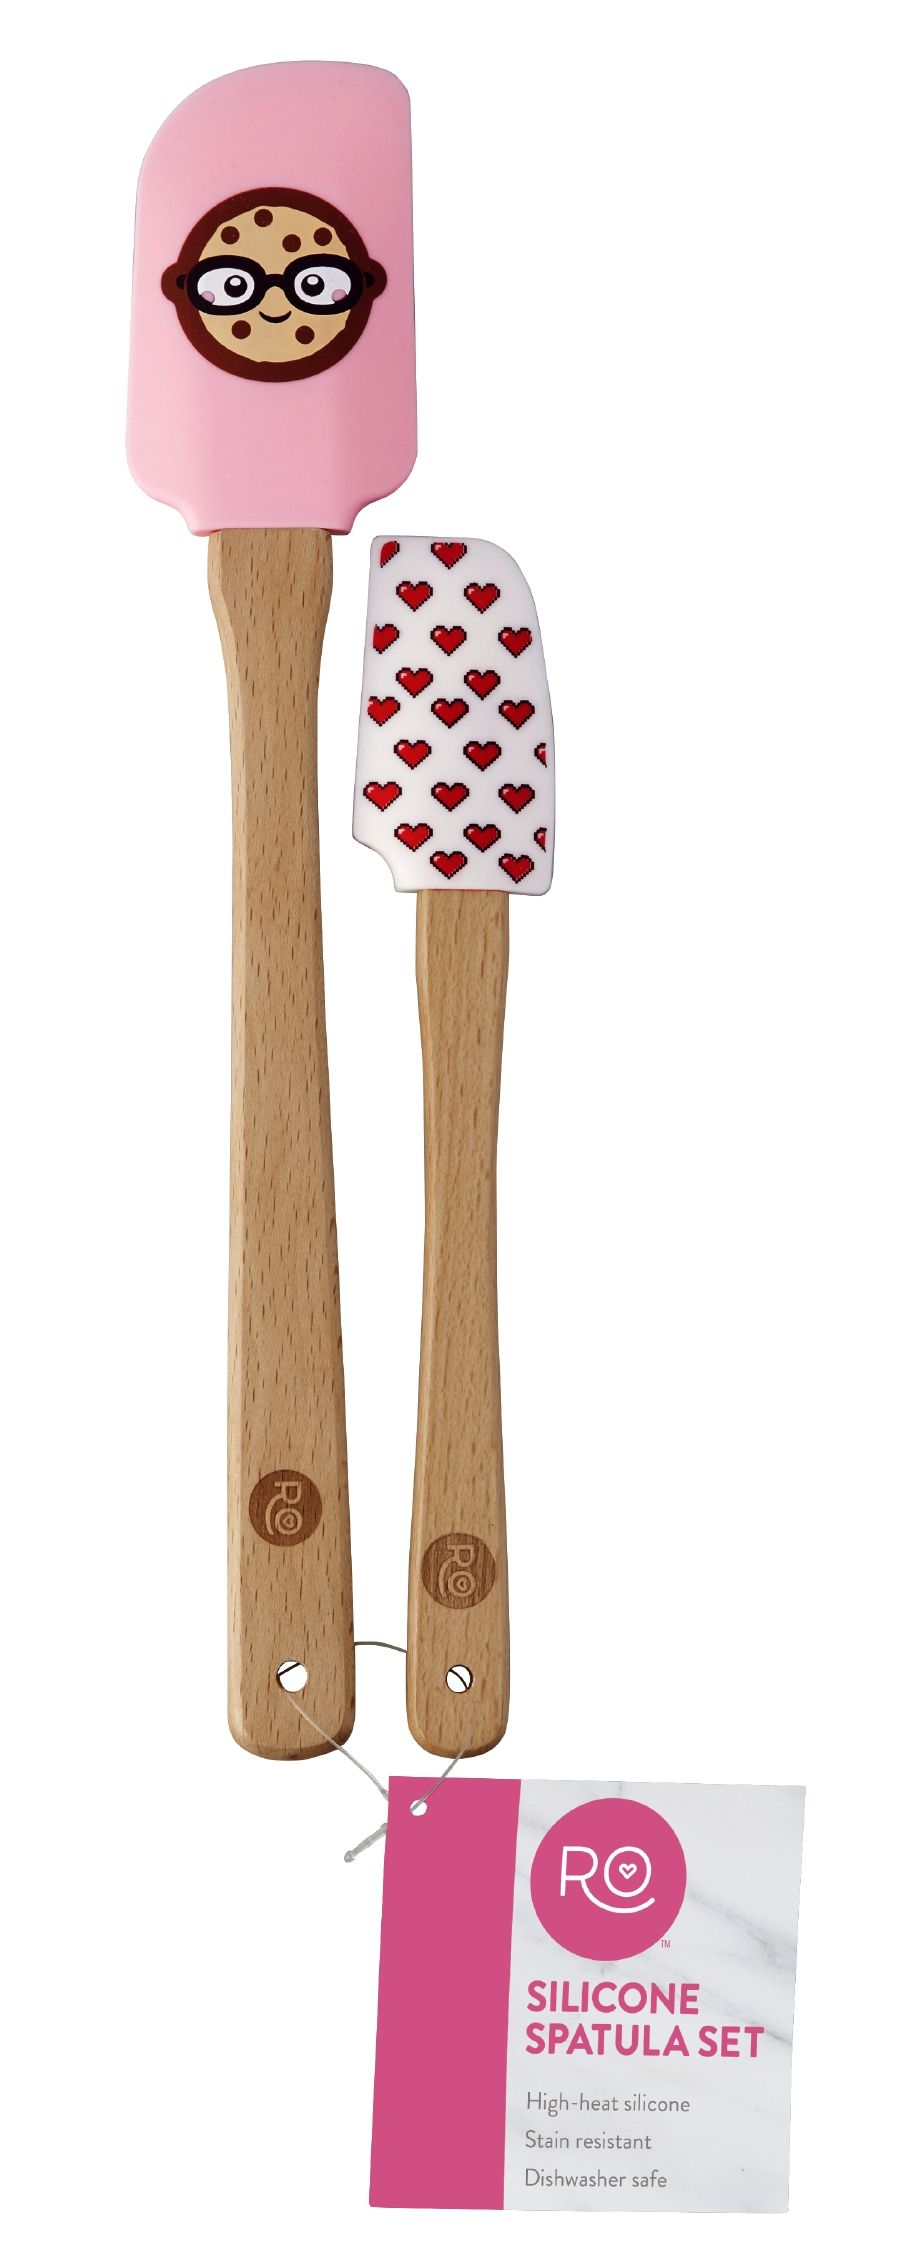 Spatula Set from the Ro Baking Line | Baking Line | Pinterest ...